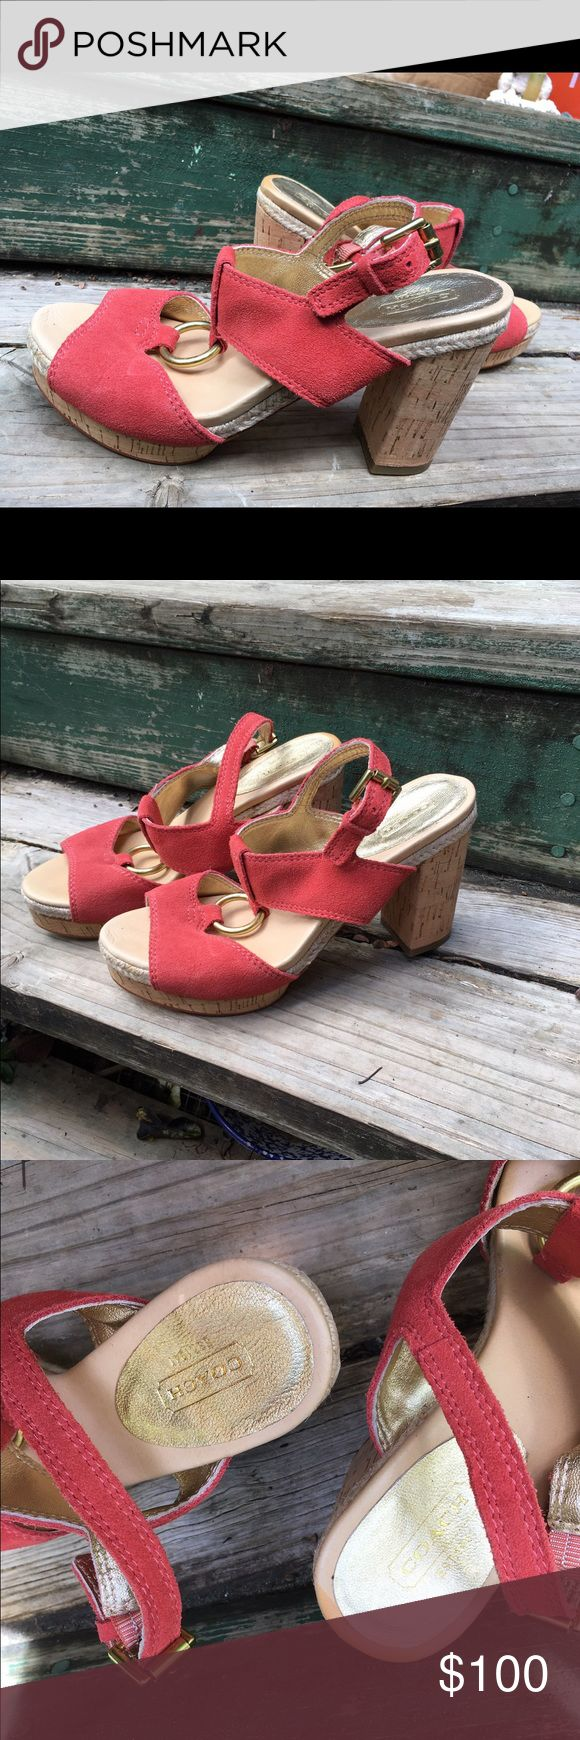 Coach ankle strap platforms Fun 70's inspired platforms with cork/espadrille  heel and O-ring detail. like new! Coach Shoes Sandals